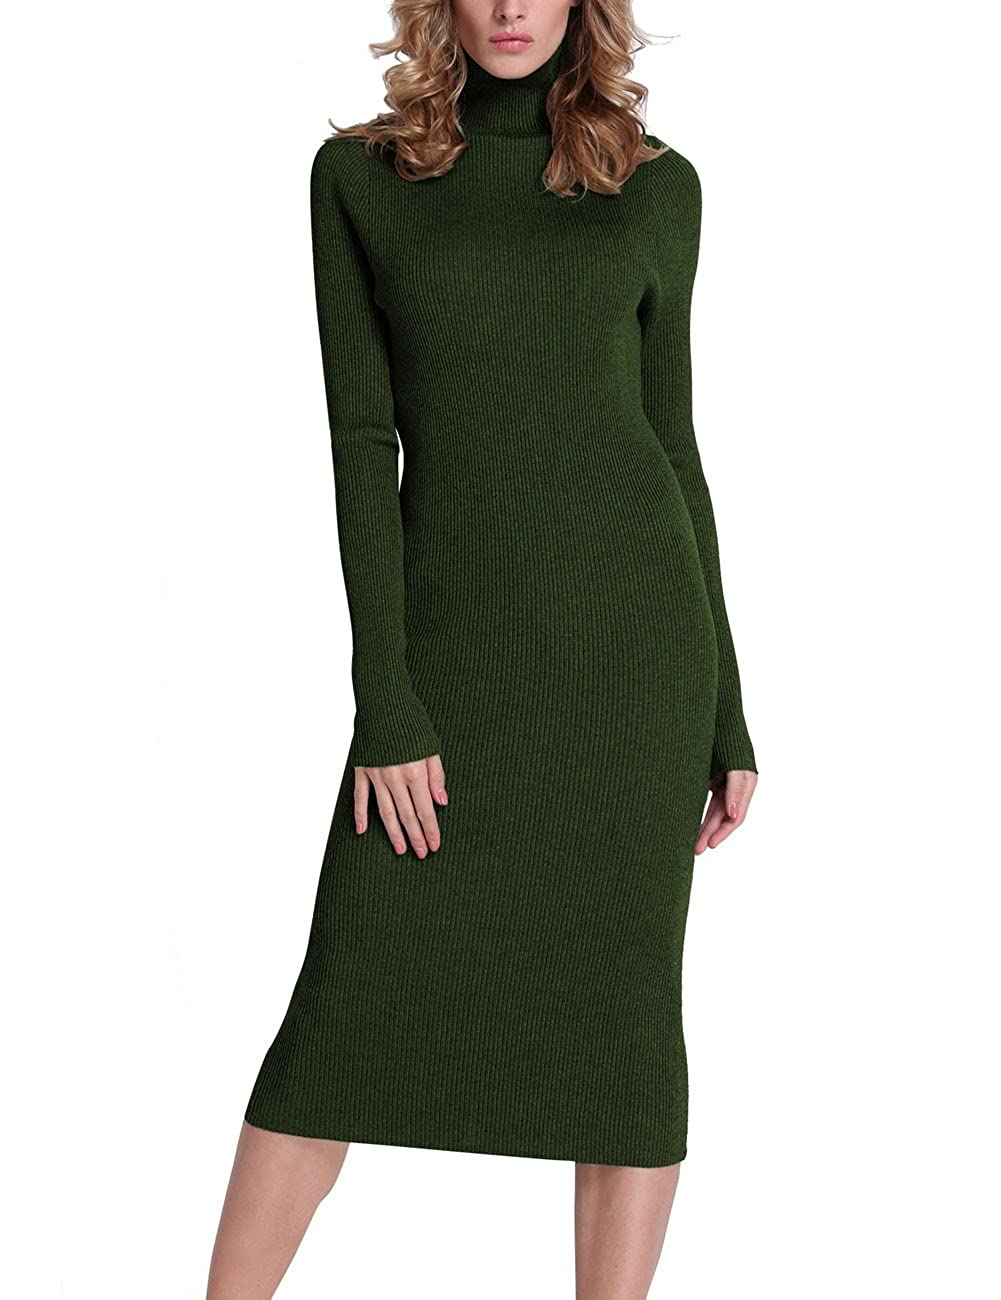 0285ae2d33 Rocorose Women s Turtleneck Ribbed Elbow Long Sleeve Knit Sweater Dress at  Amazon Women s Clothing store